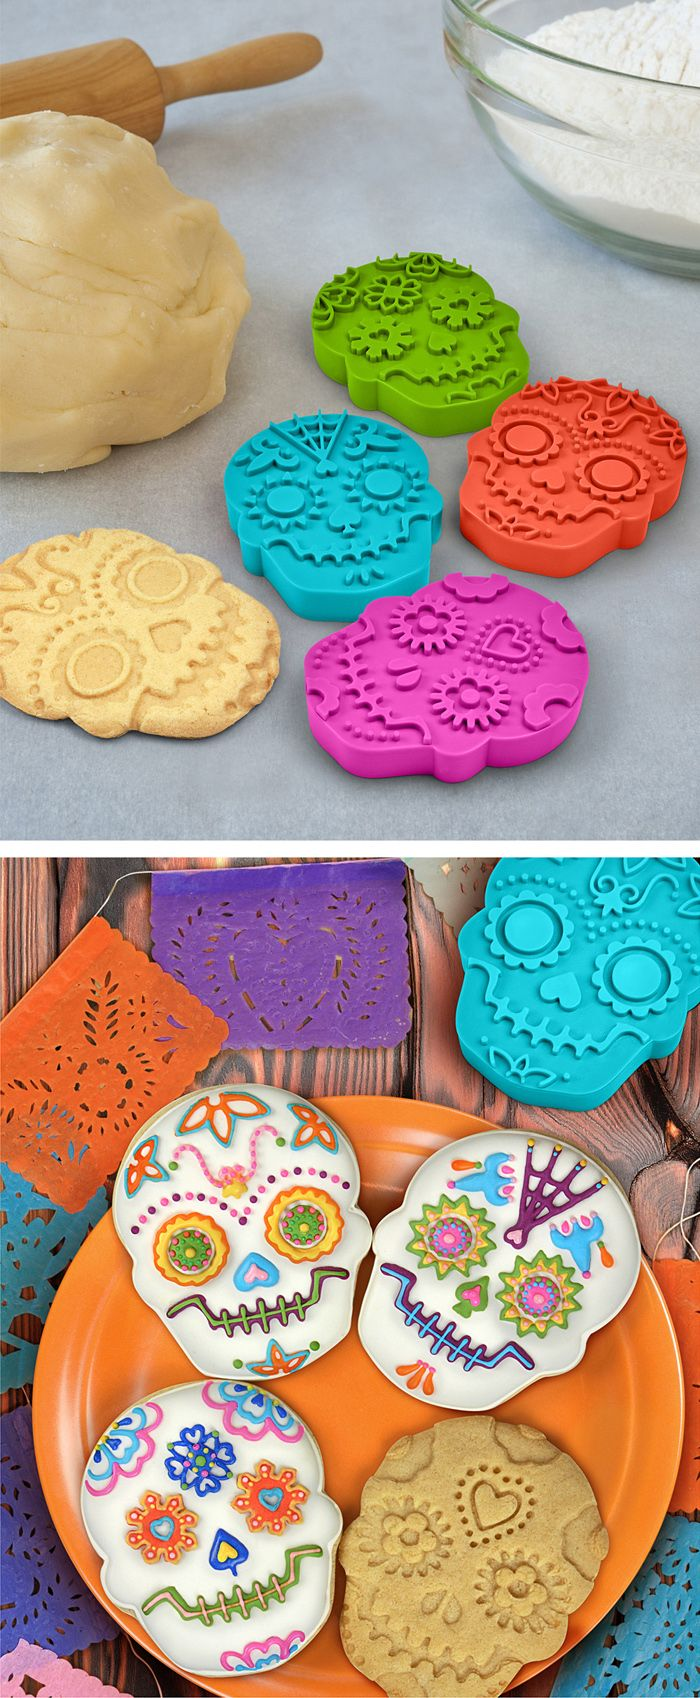 Sugar skull cookie stamp #product_design #kitchen #baking